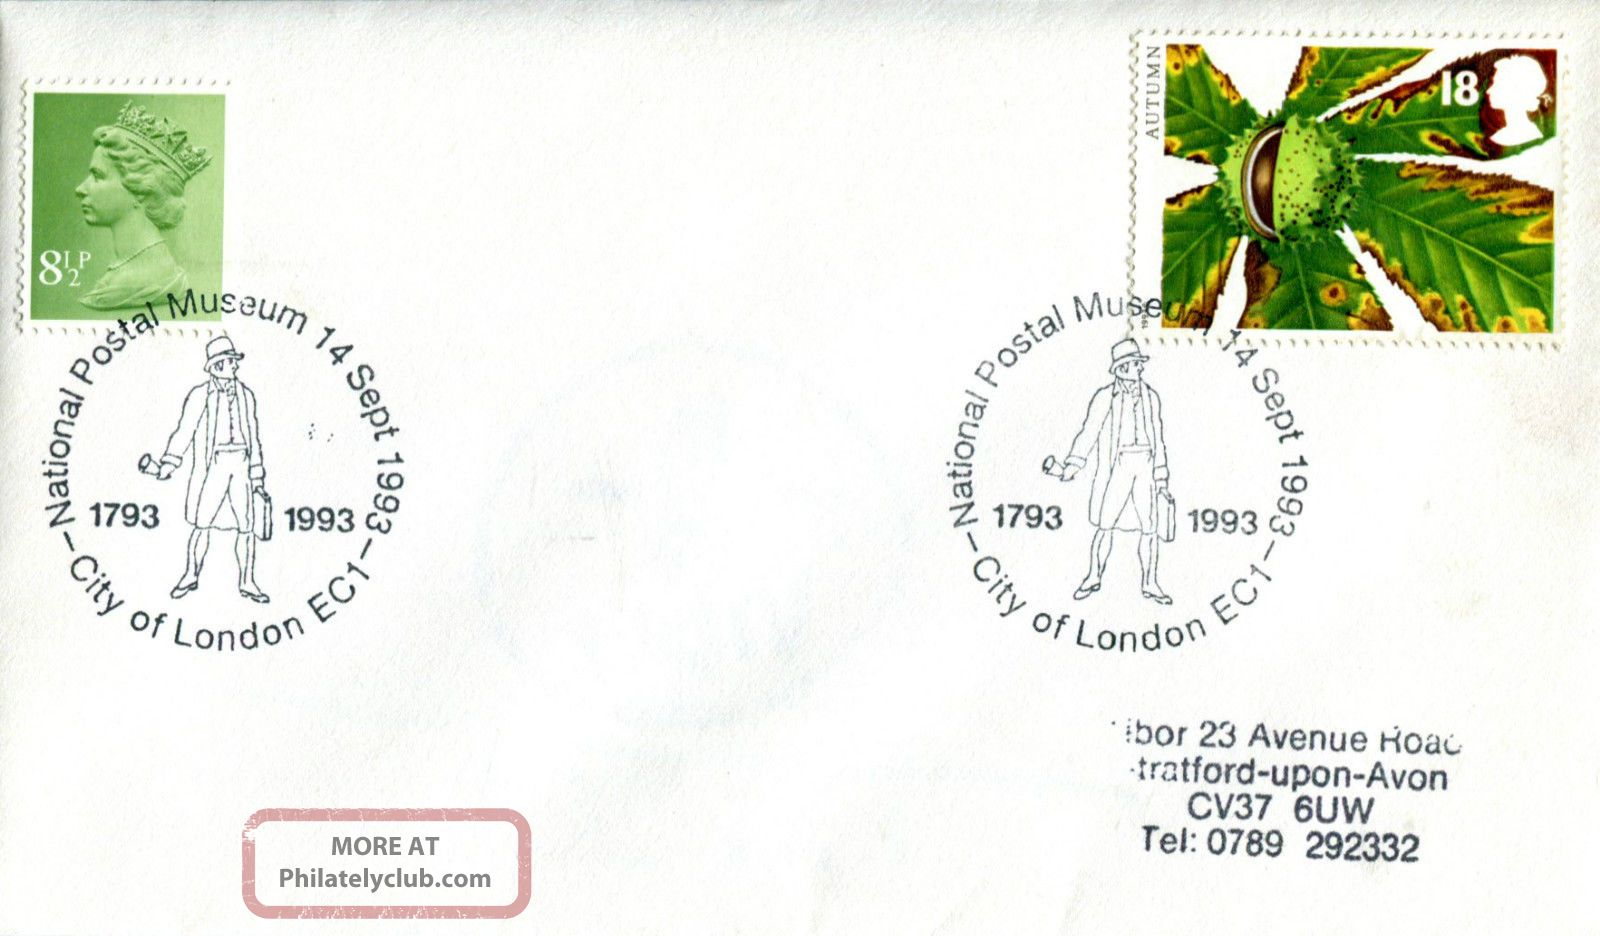 14 September 1993 Autumn First Day Cover National Postal Museum Shs (a) Topical Stamps photo